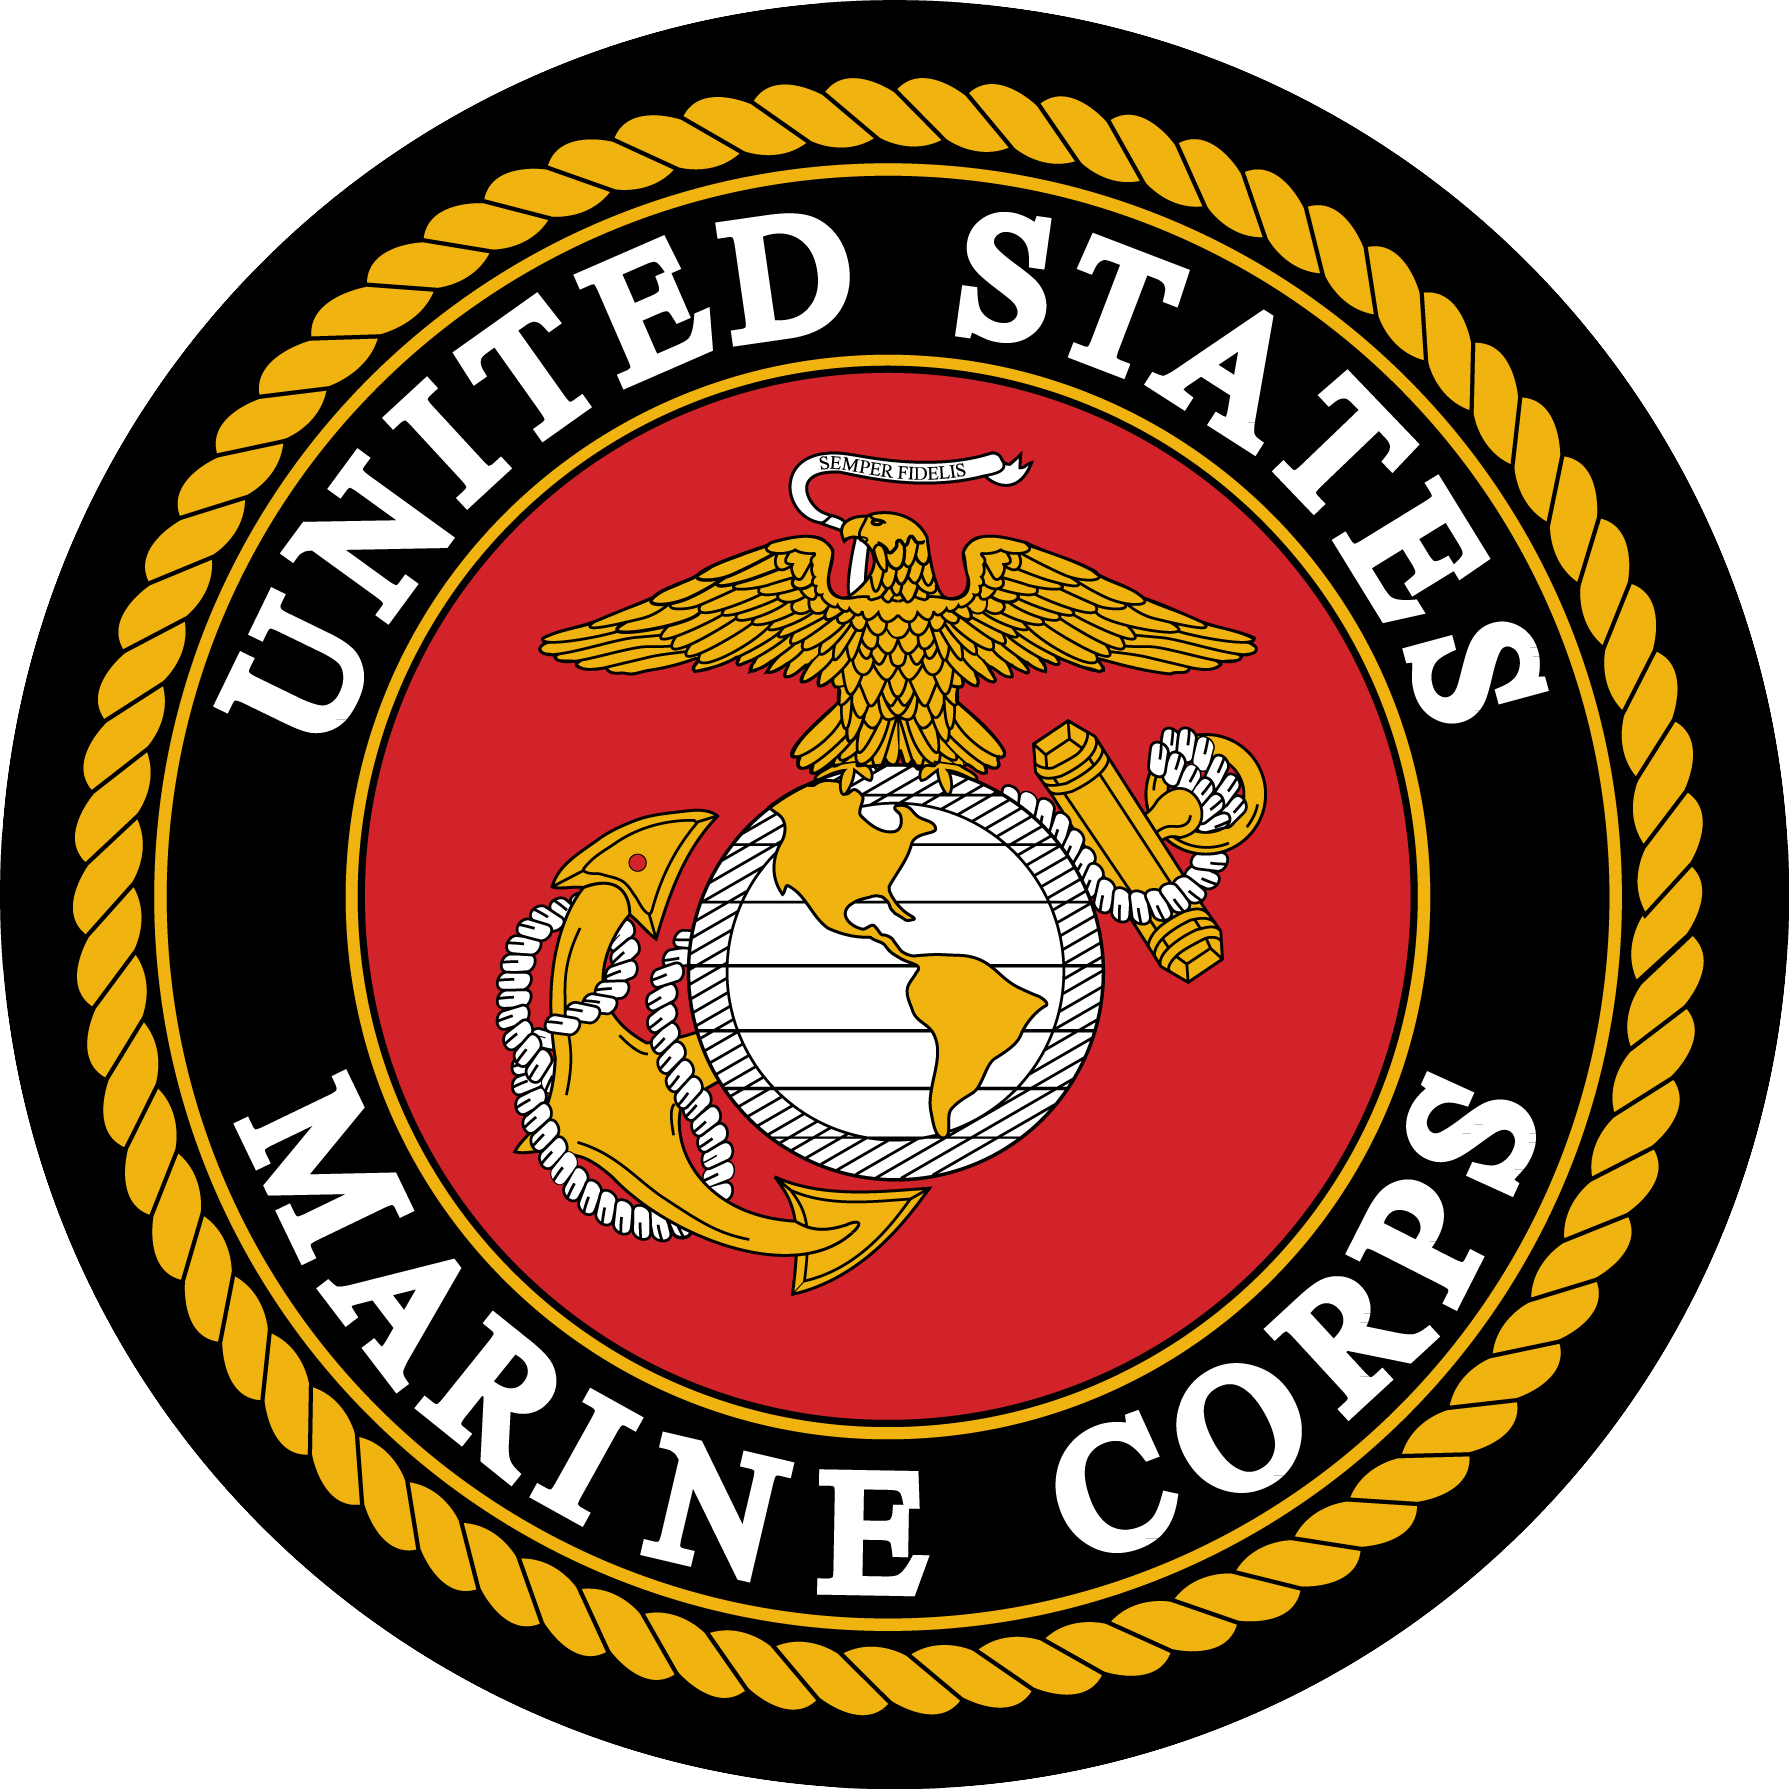 Free marine corps emblem clip art clipart images gallery for.